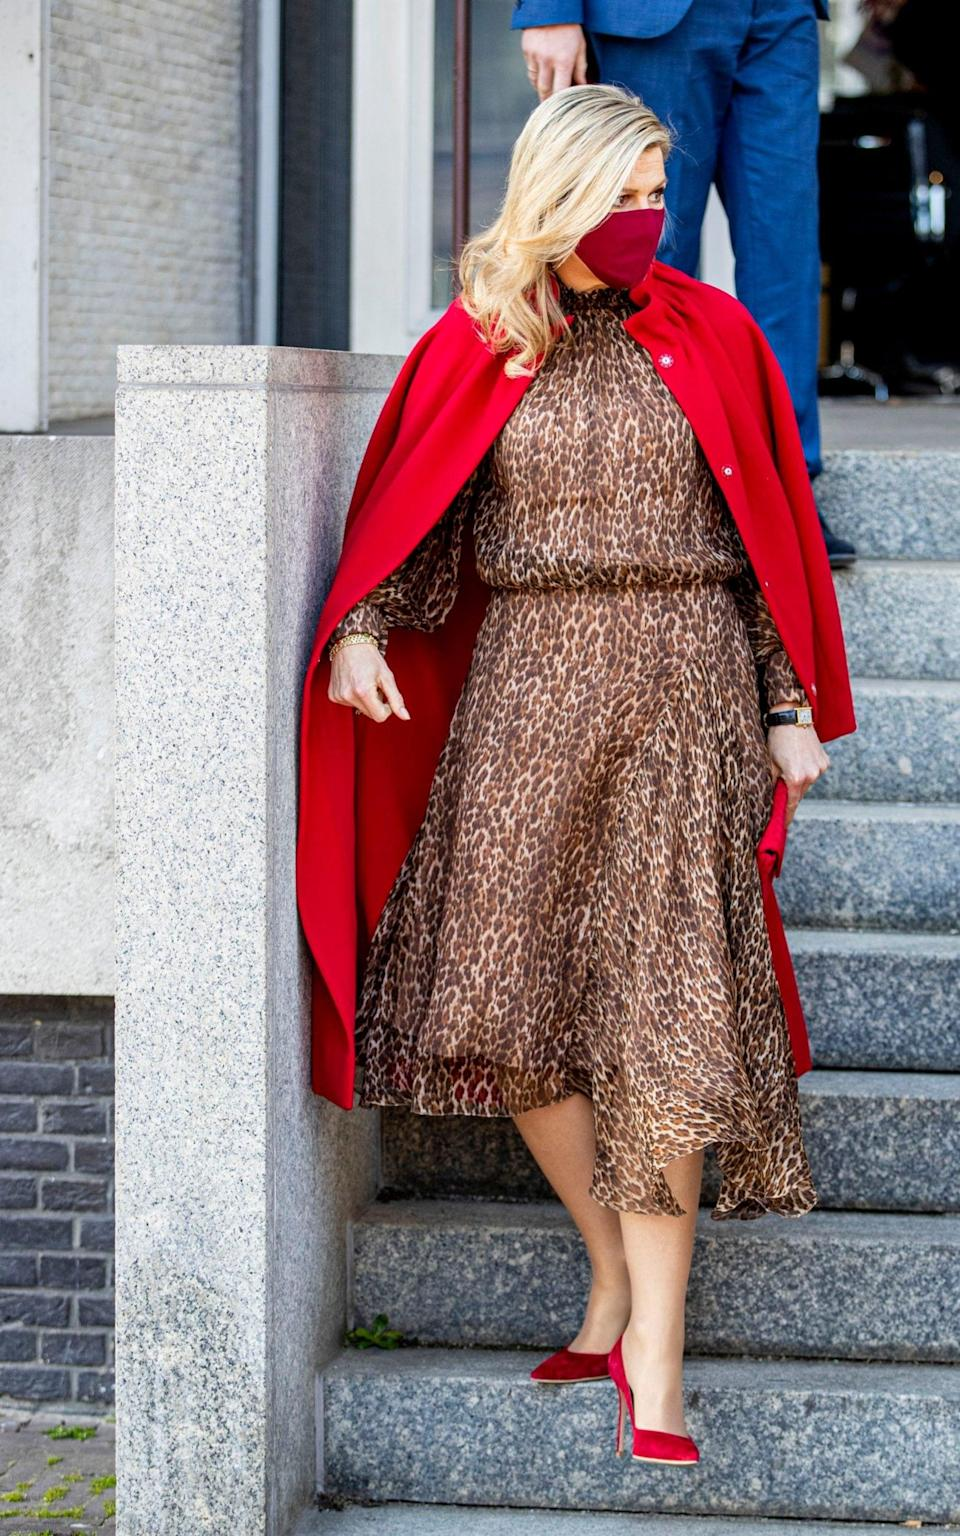 Queen Maxima wearing a leopard print dress by Notan at The Hague - Getty